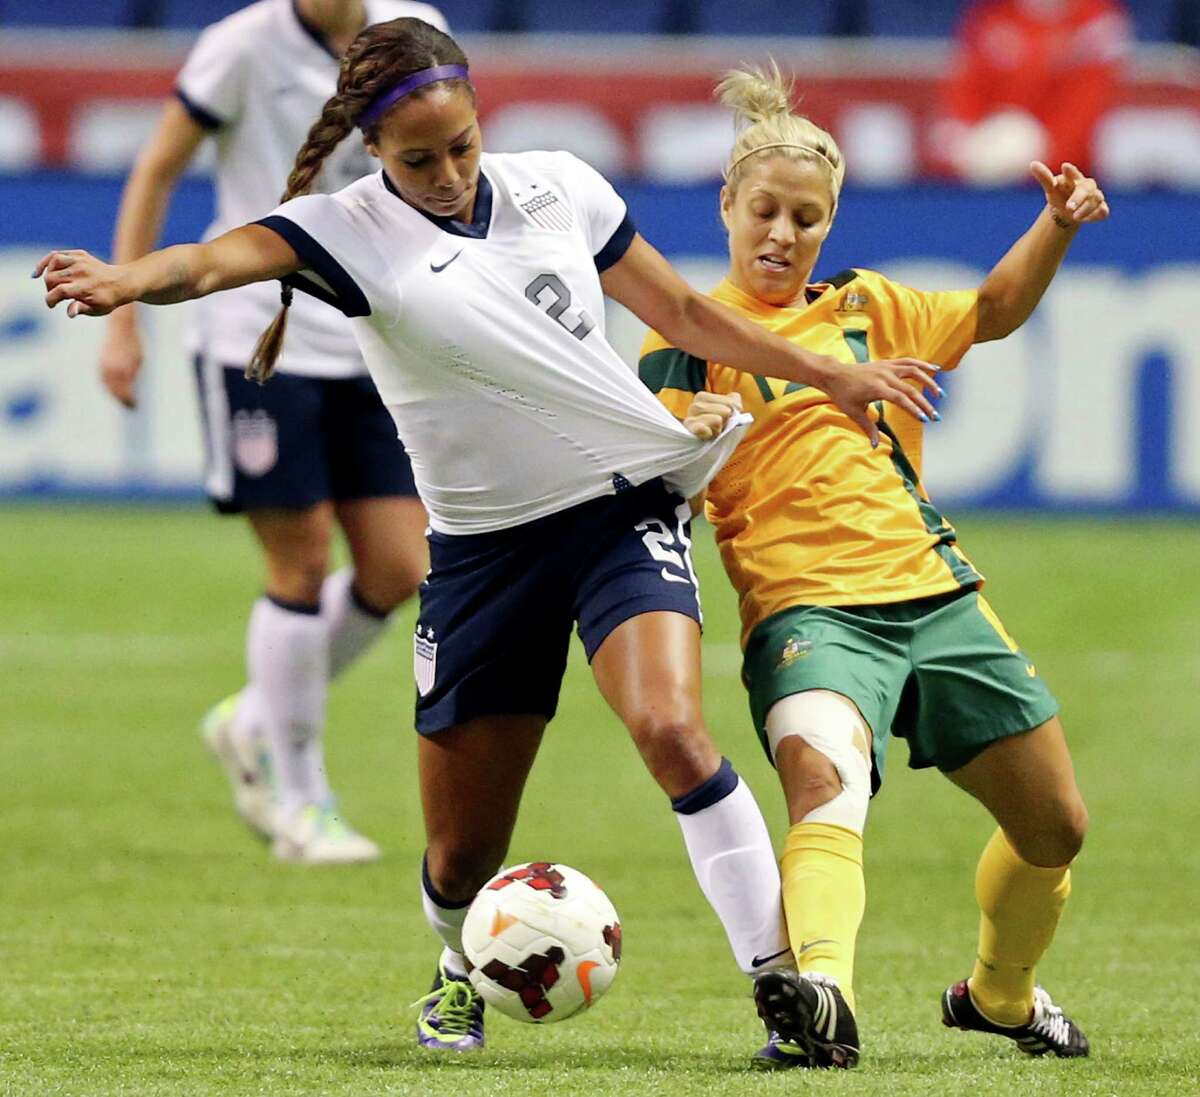 United States of America's Sydney Leroux and Australia's Katrina Gorry battle for control of the ball during first half action of an international friendly soccer match Sunday Oct. 20, 2013 at the Alamodome.